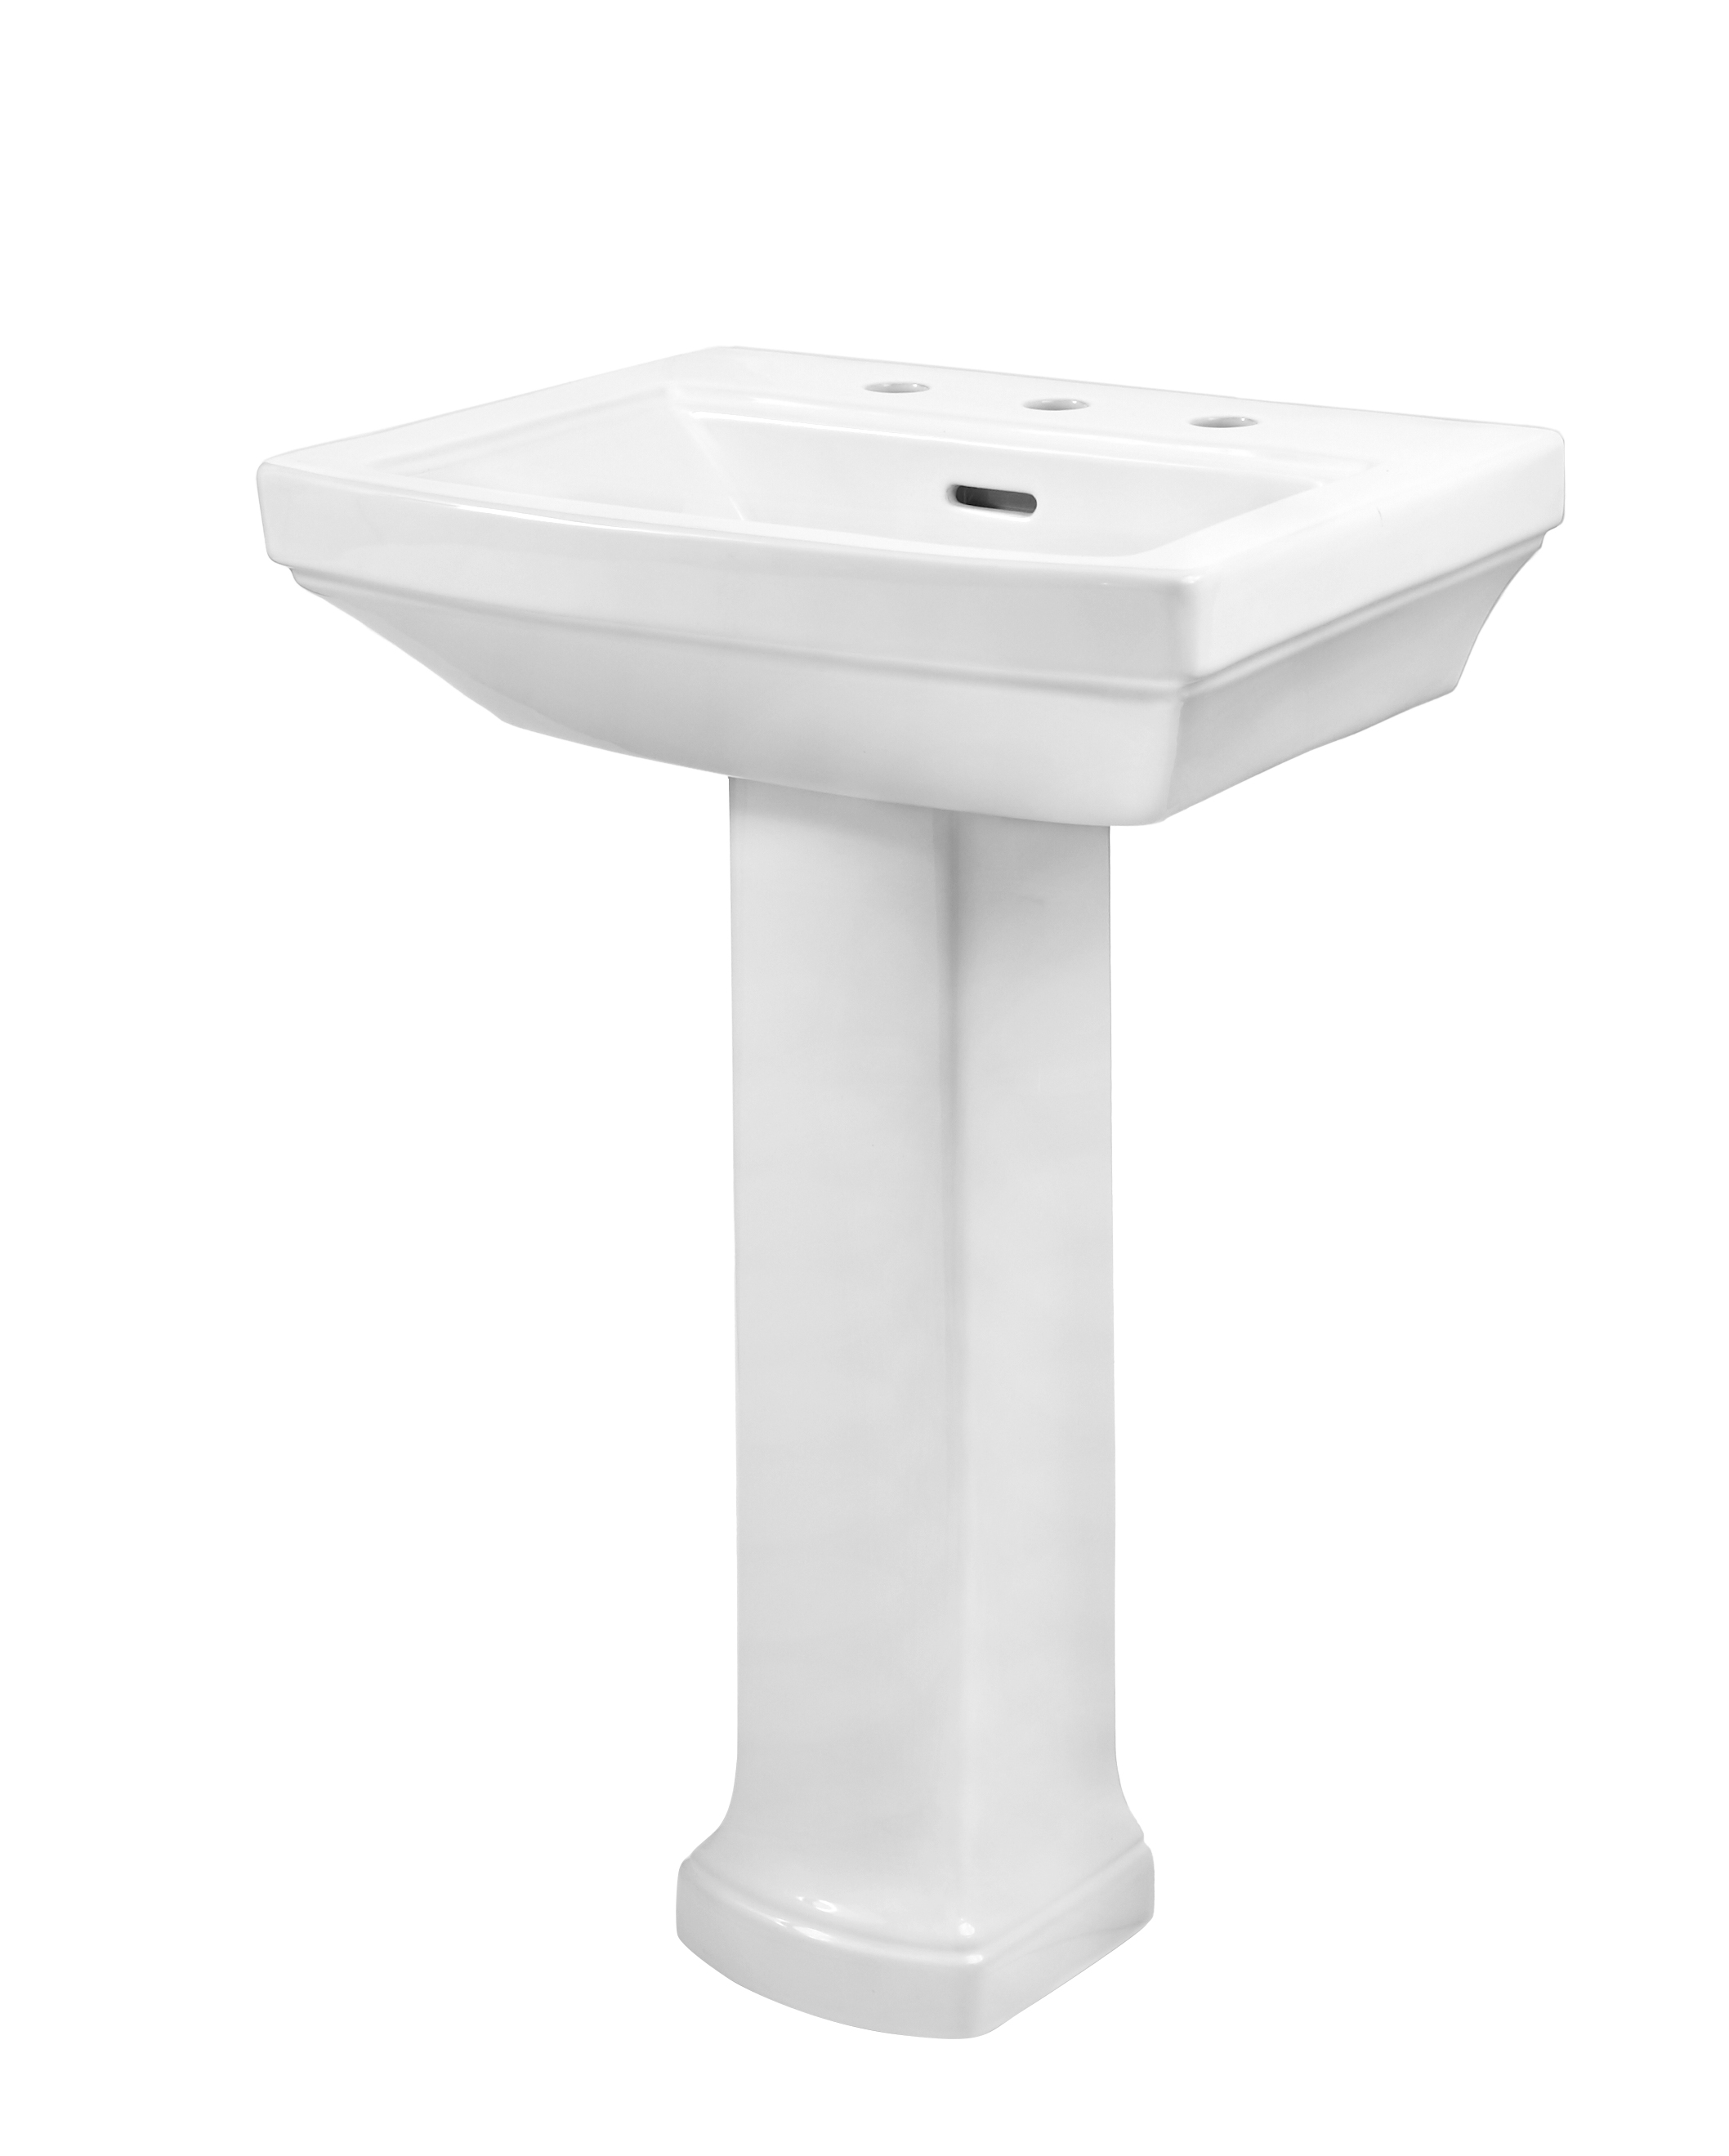 sinks small bathroom of kohler fresh pedestal for bathrooms spaces luxury